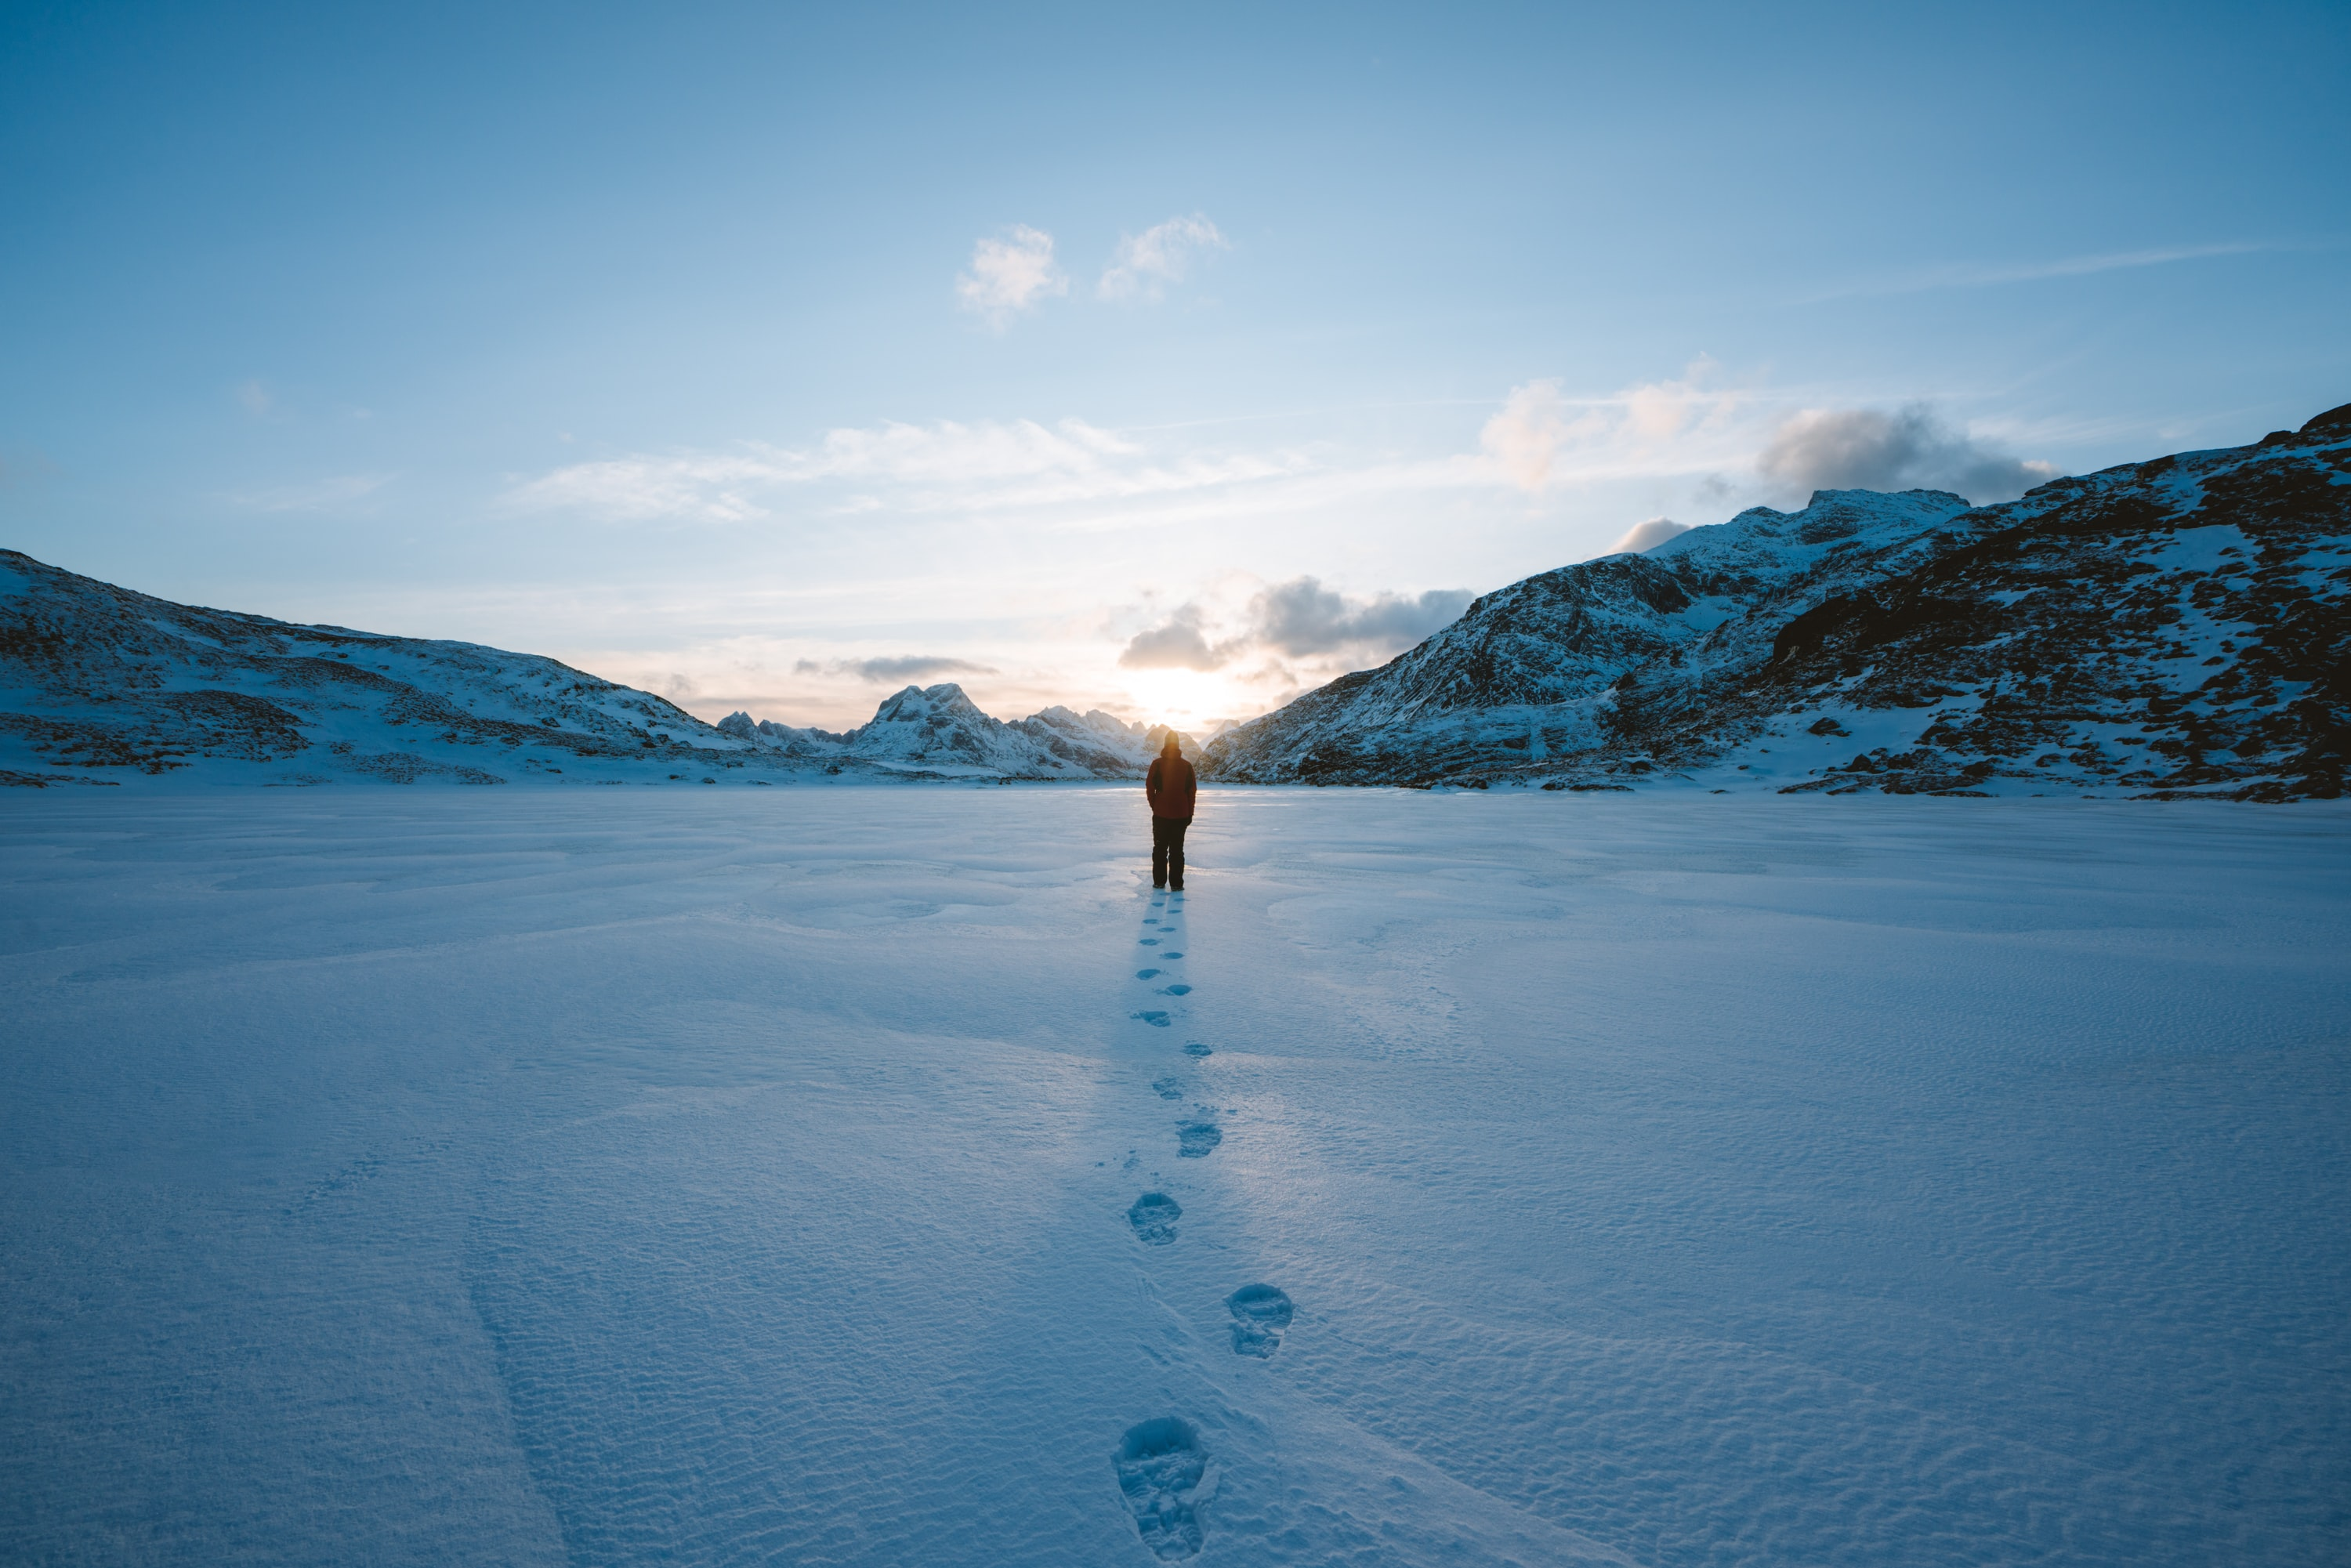 person walking on snow field leaving foot prints